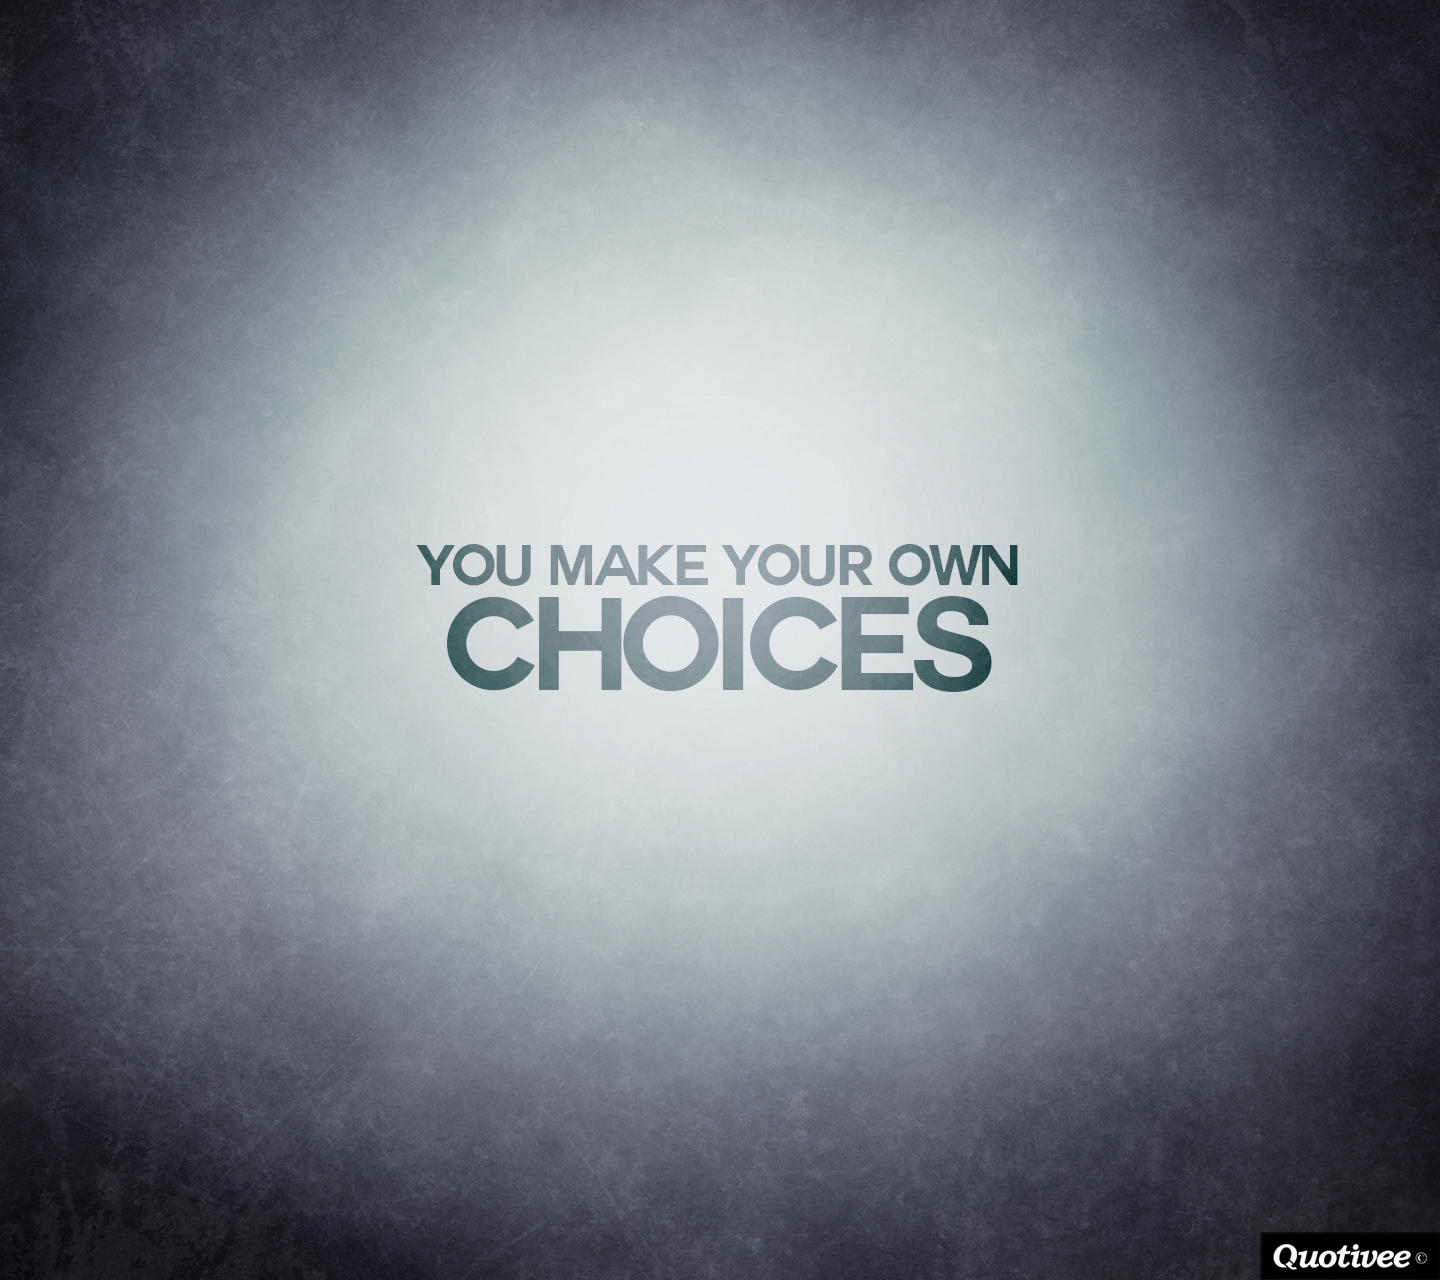 Make Your Own Decisions Quotes: You Made Your Choice Quotes. QuotesGram